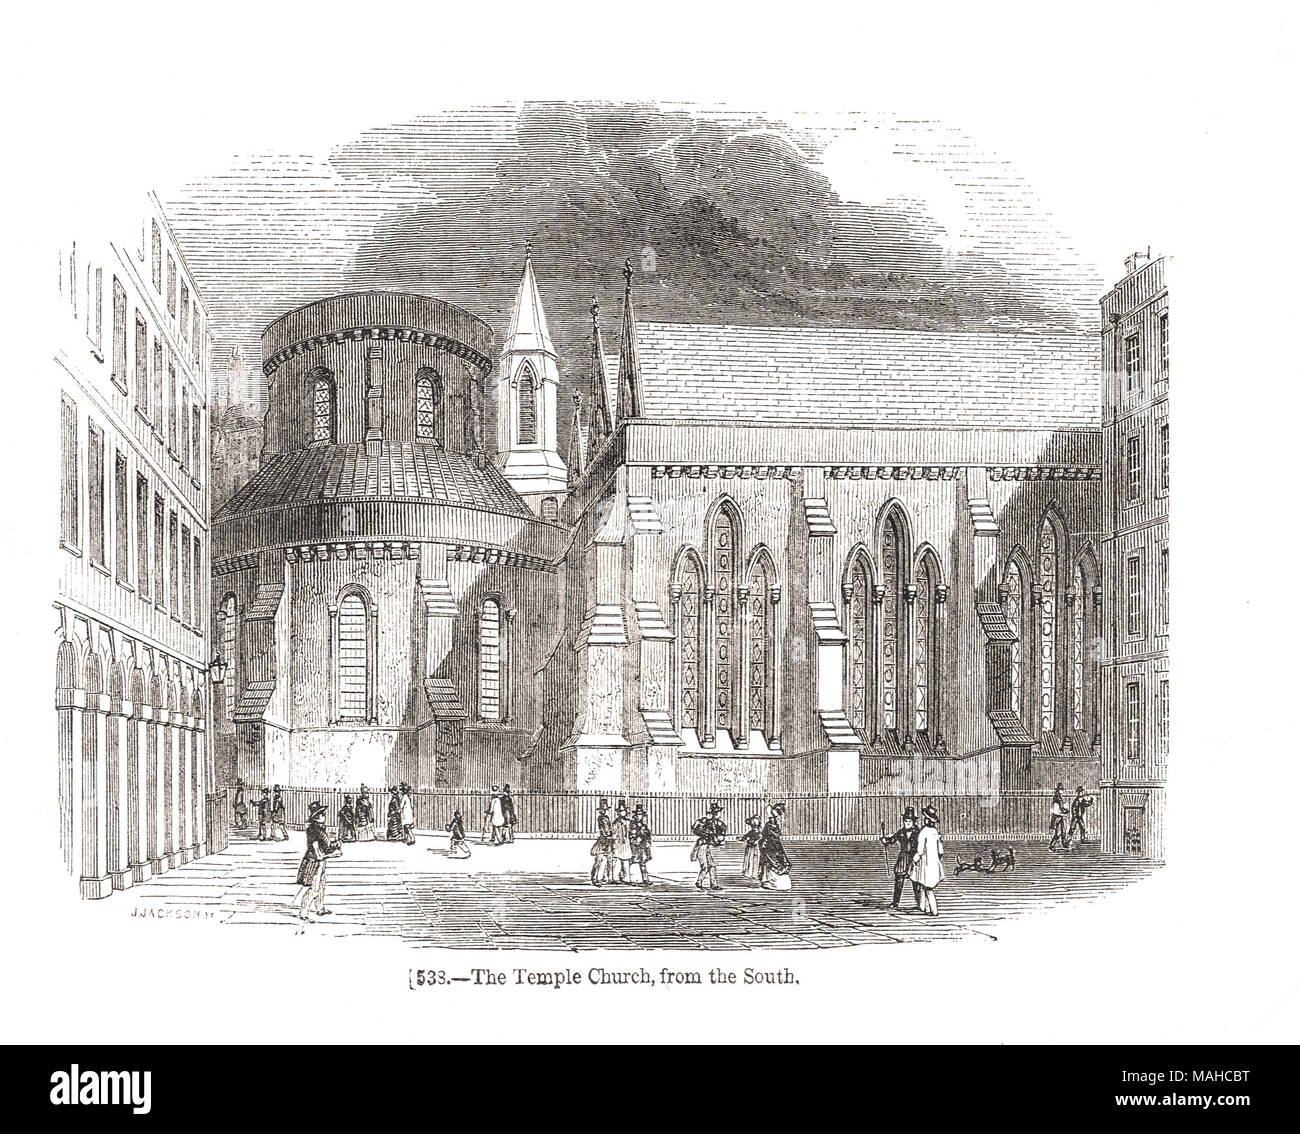 The Temple Church, City of London, England, 19th century scene from the South - Stock Image